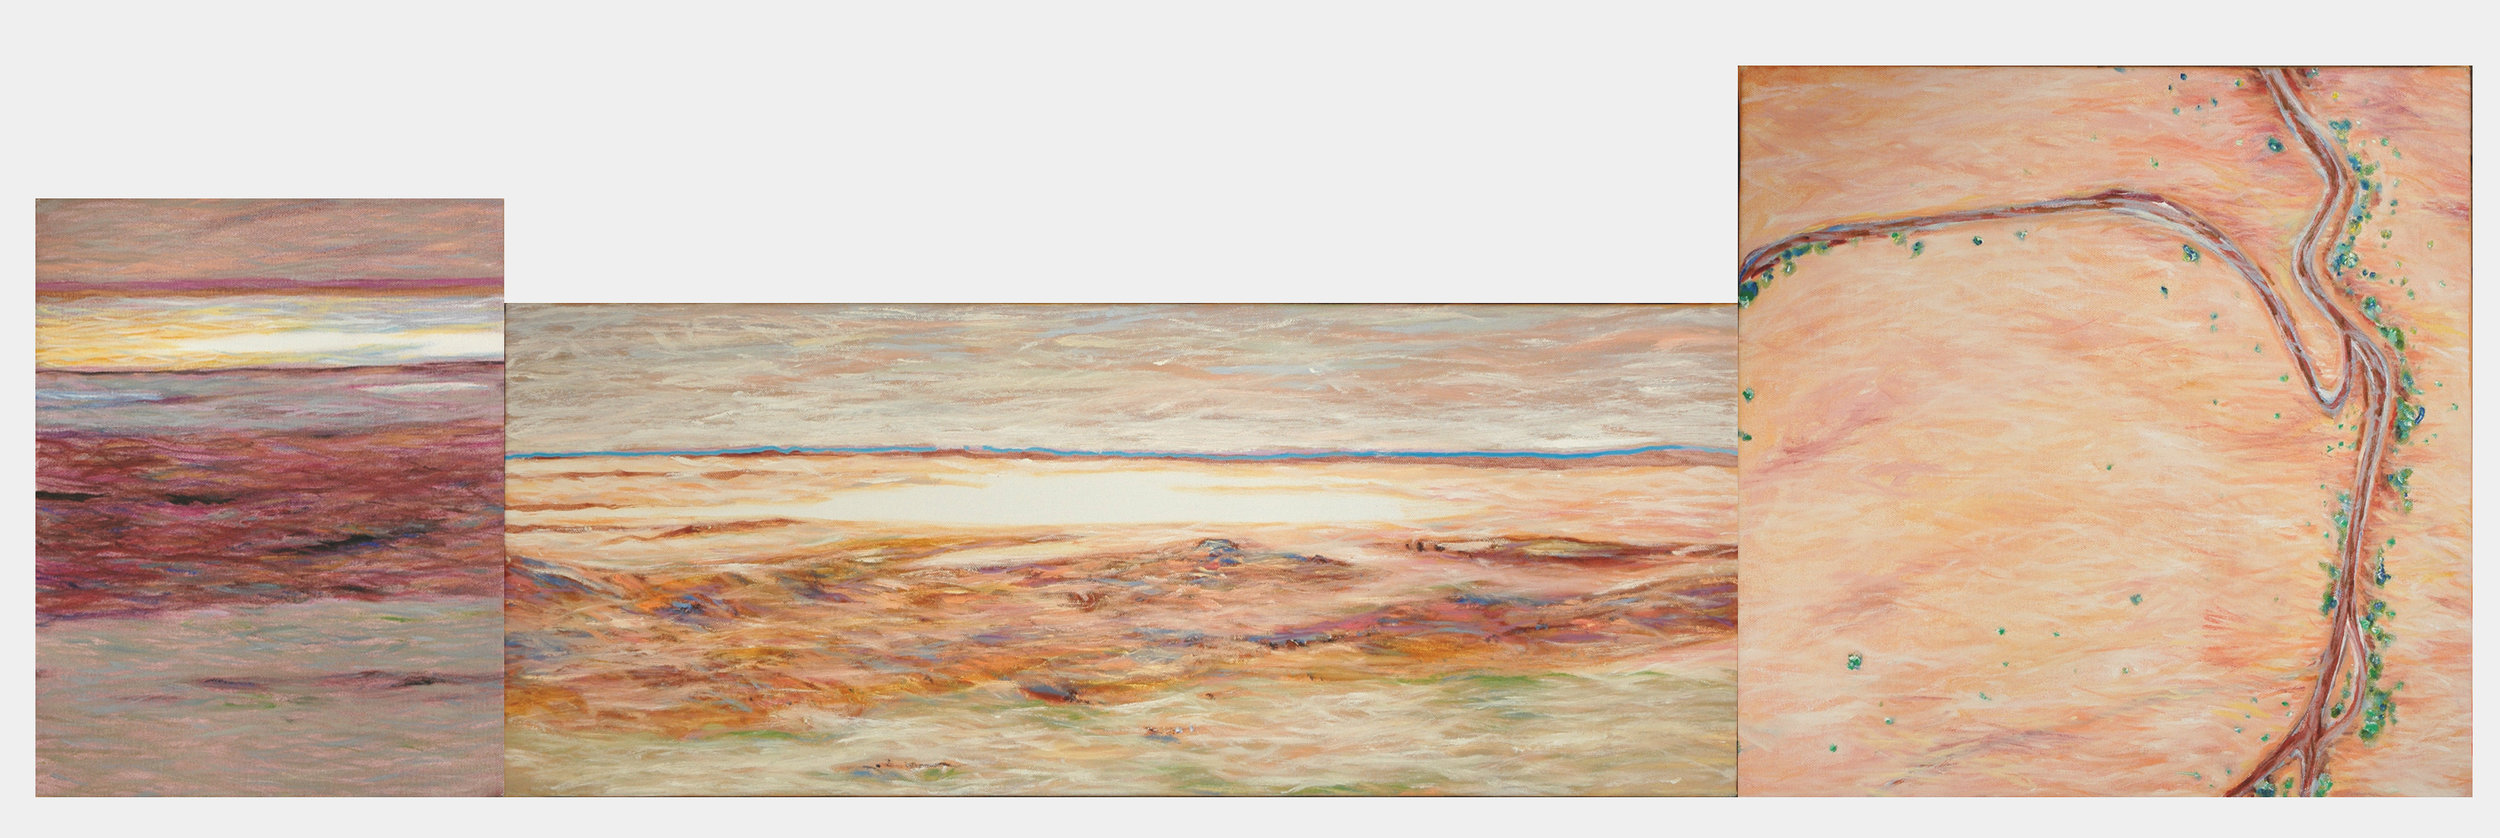 LAKE EYRE DRYING (STUDY)